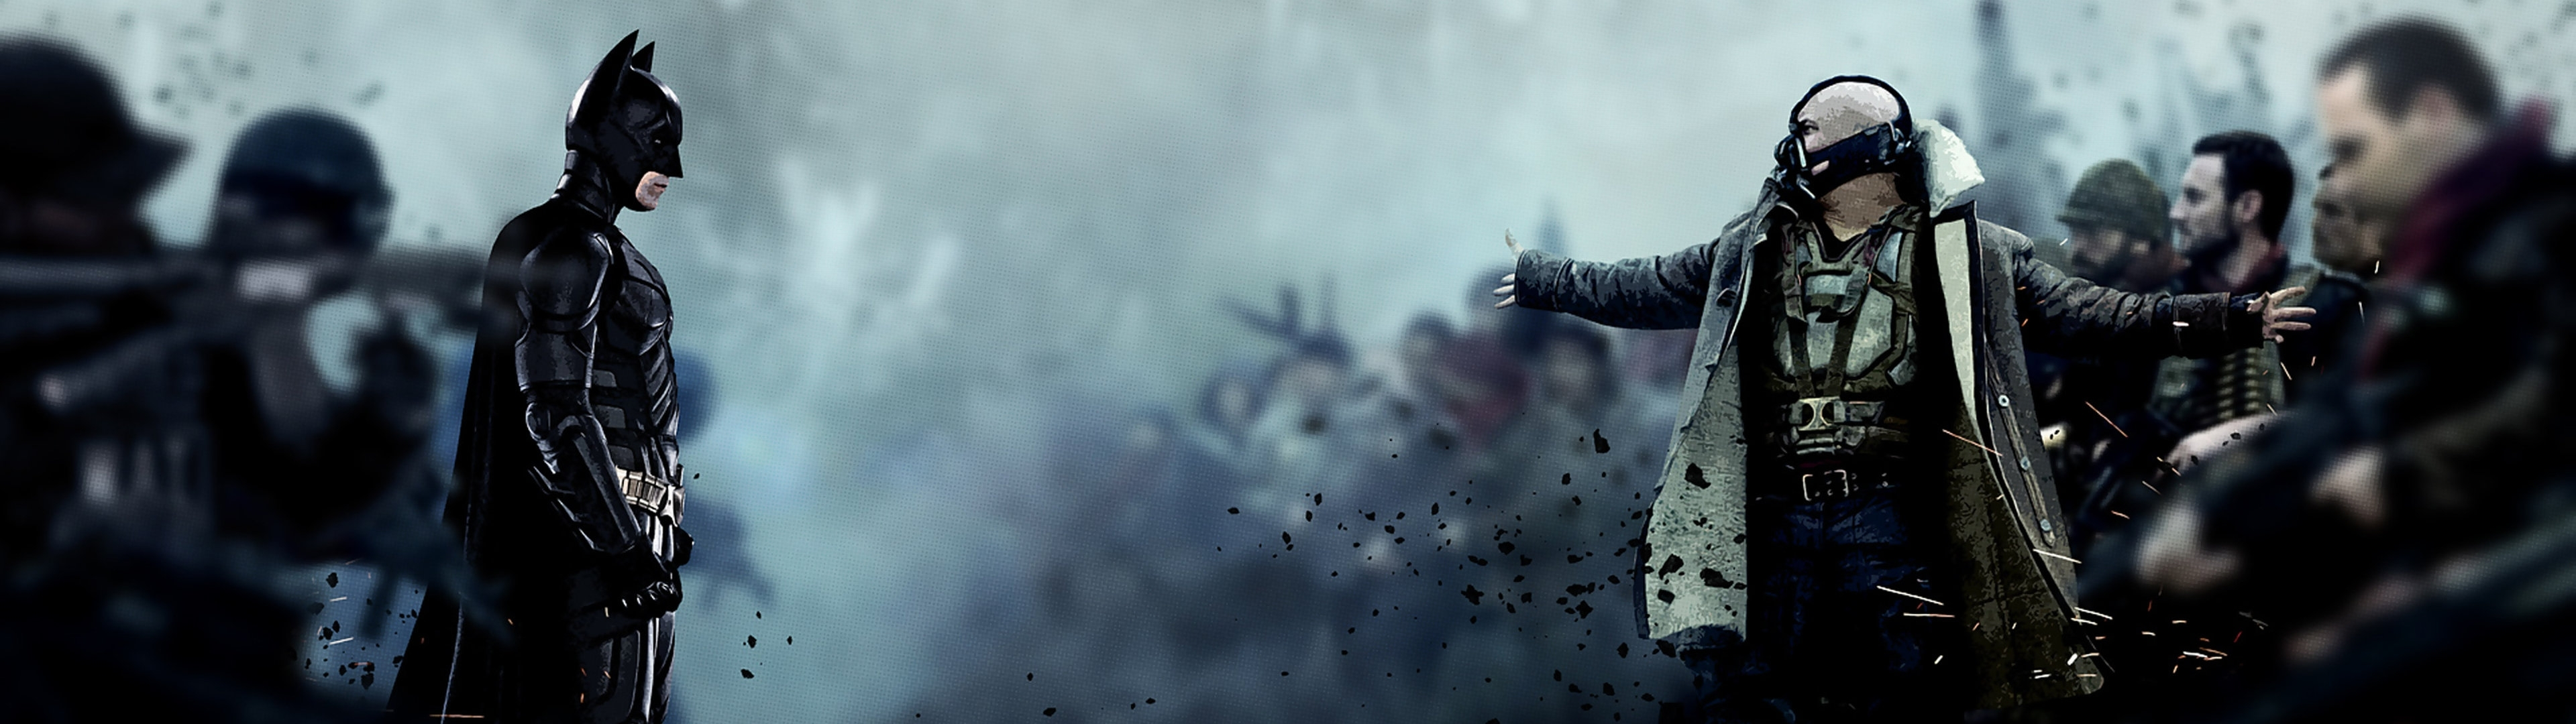 Title Batman Vs Bane Dual Screen Wallpaper